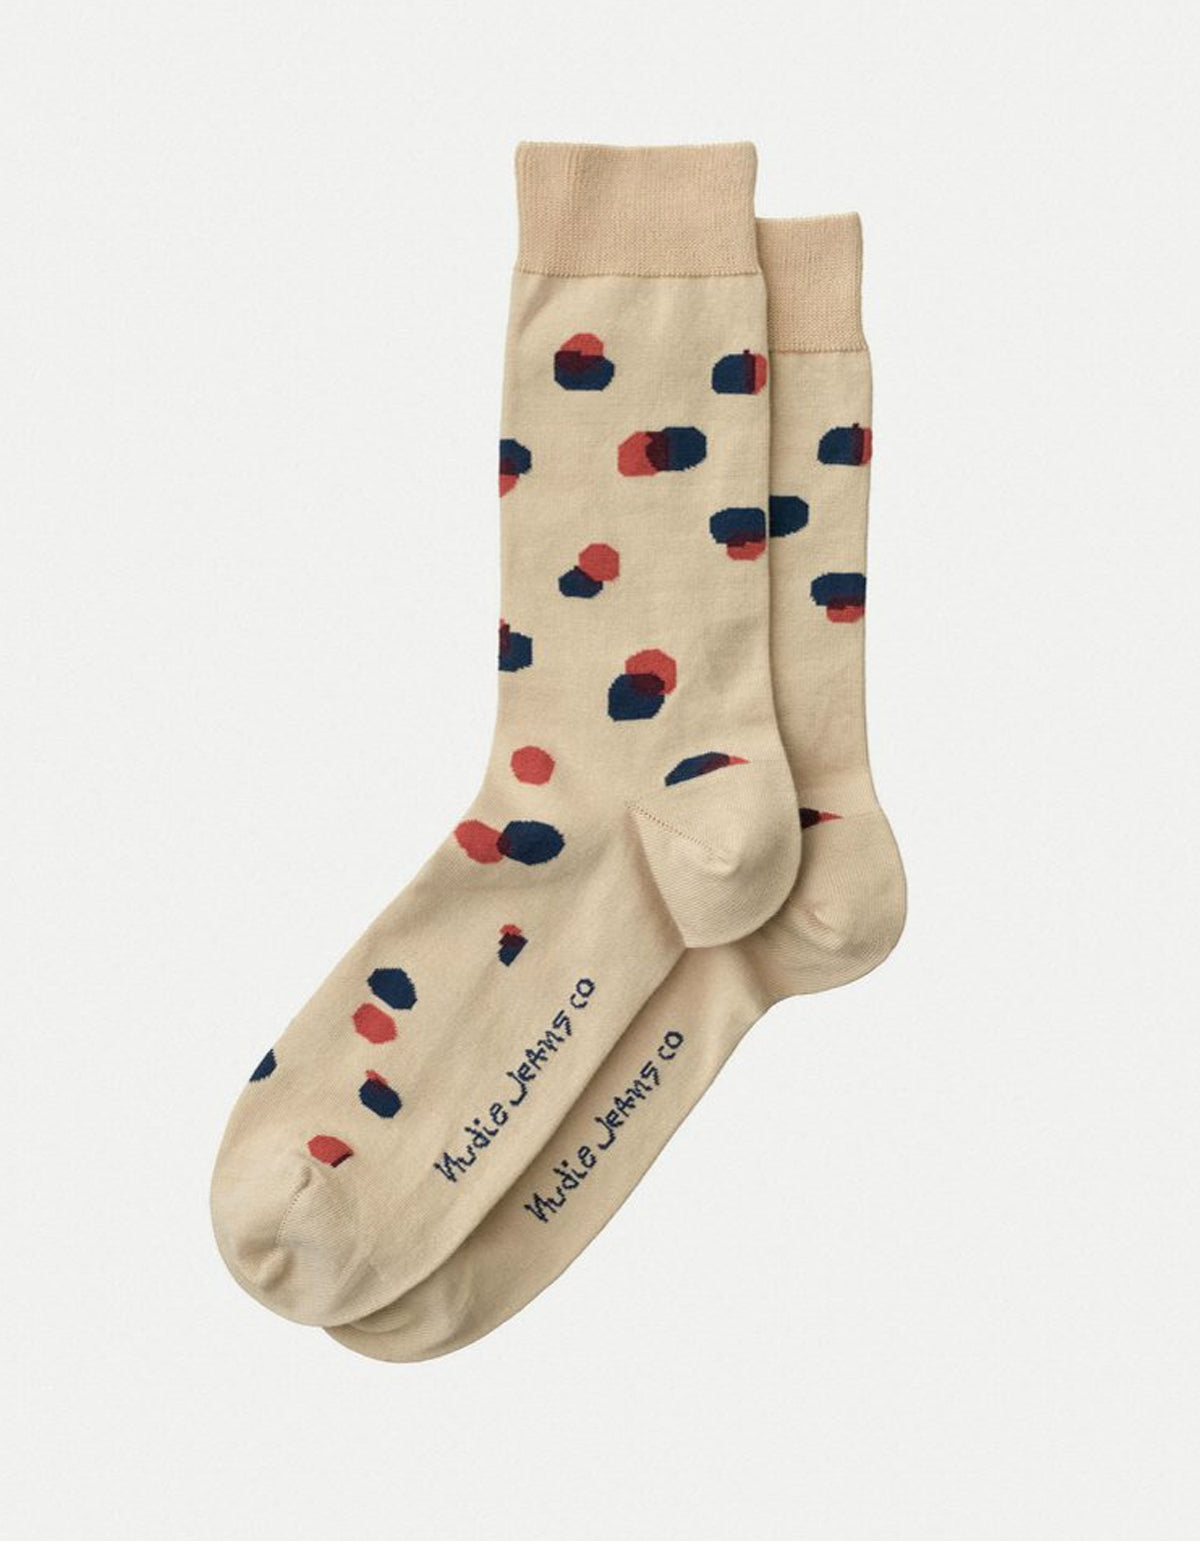 Nudie Olsson Random Dots Socks, Beige